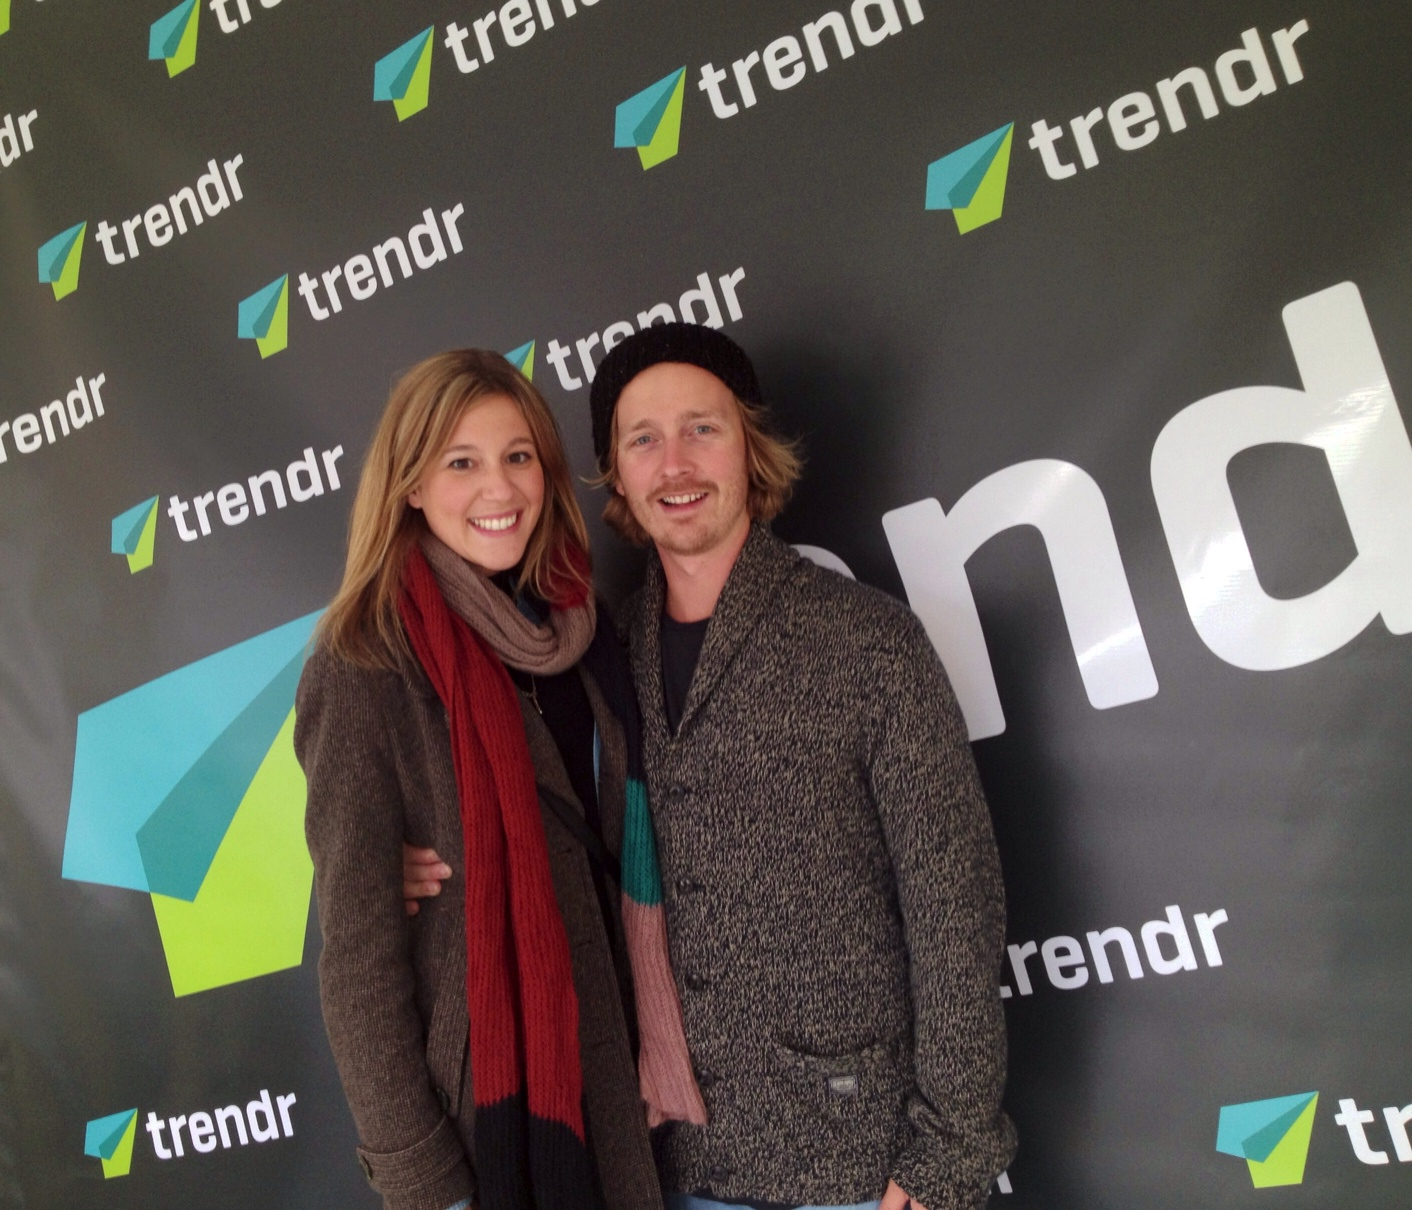 Some new friends met at Trendr Meeting zone at the Grand Prix Montreal f1